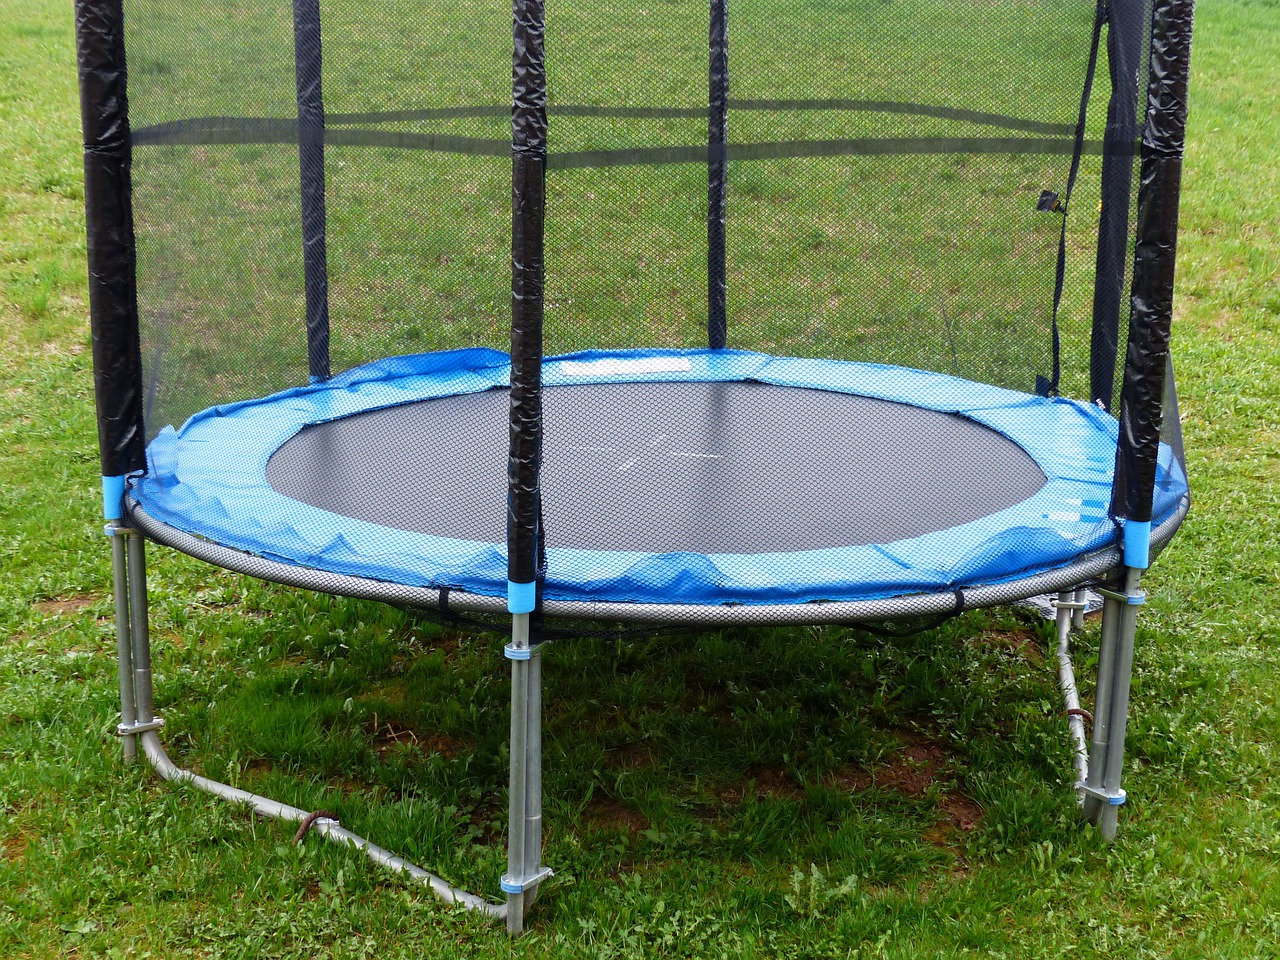 blue round trampoline on a green grass